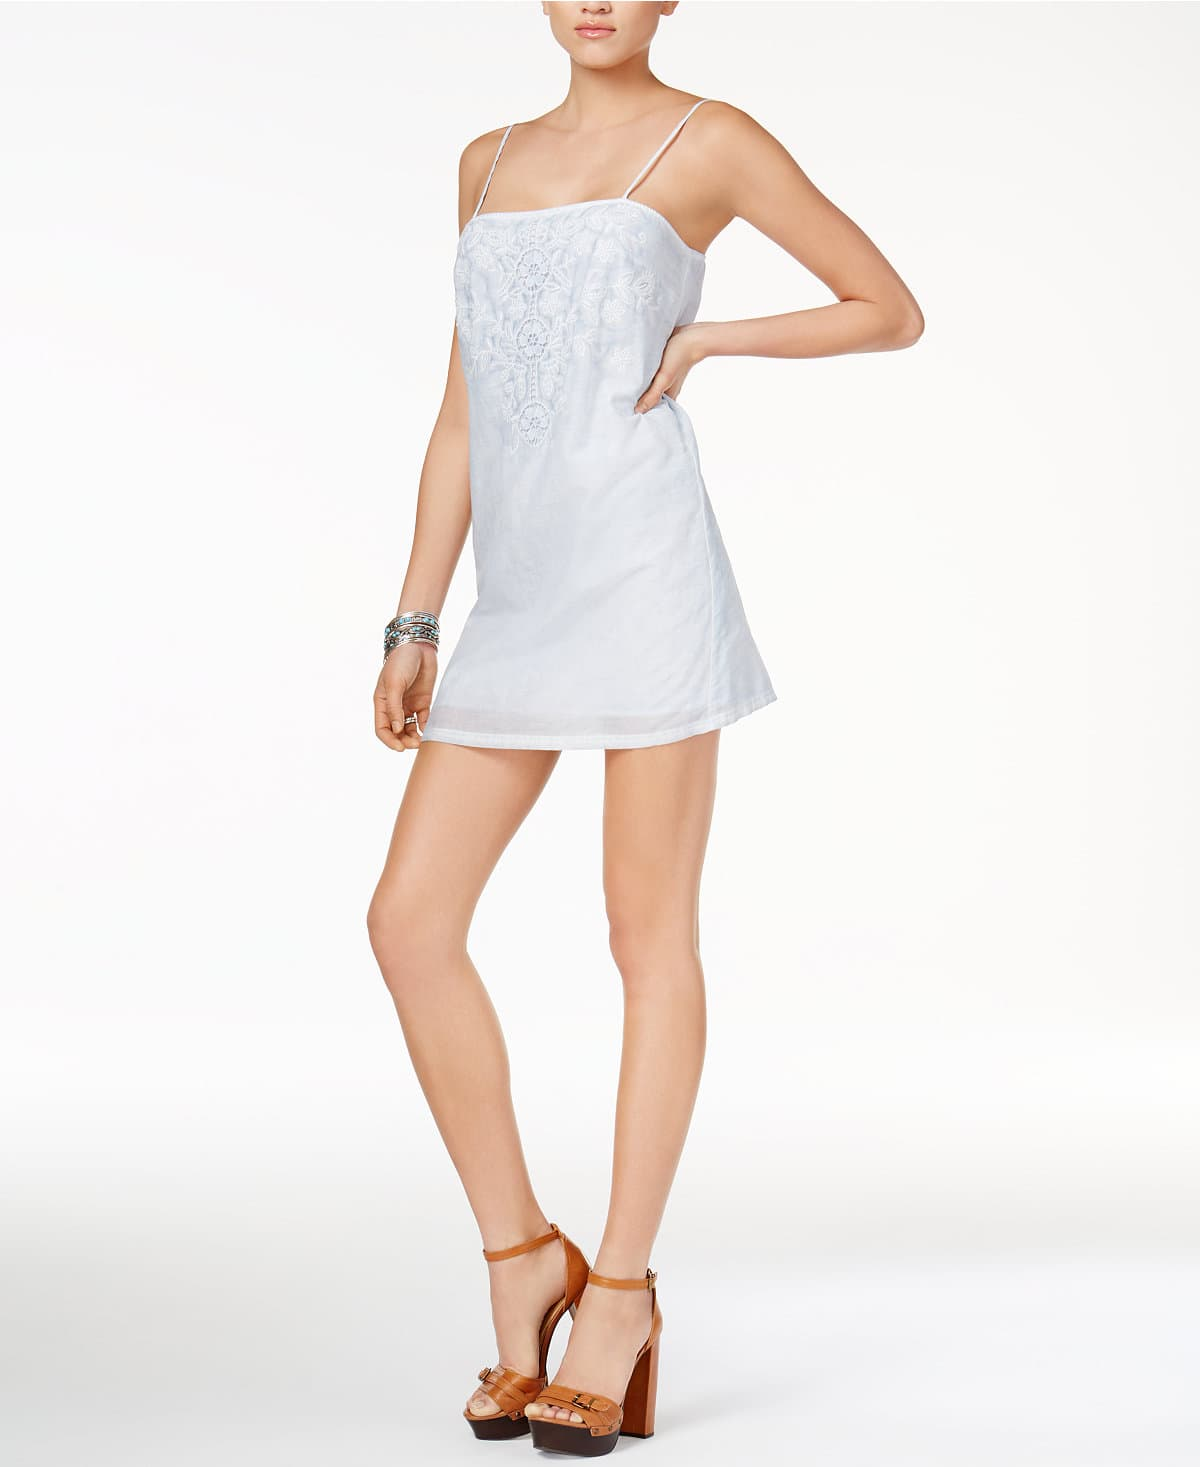 GUESS Judy Embroidered Slip Dress $24.66 at Macys